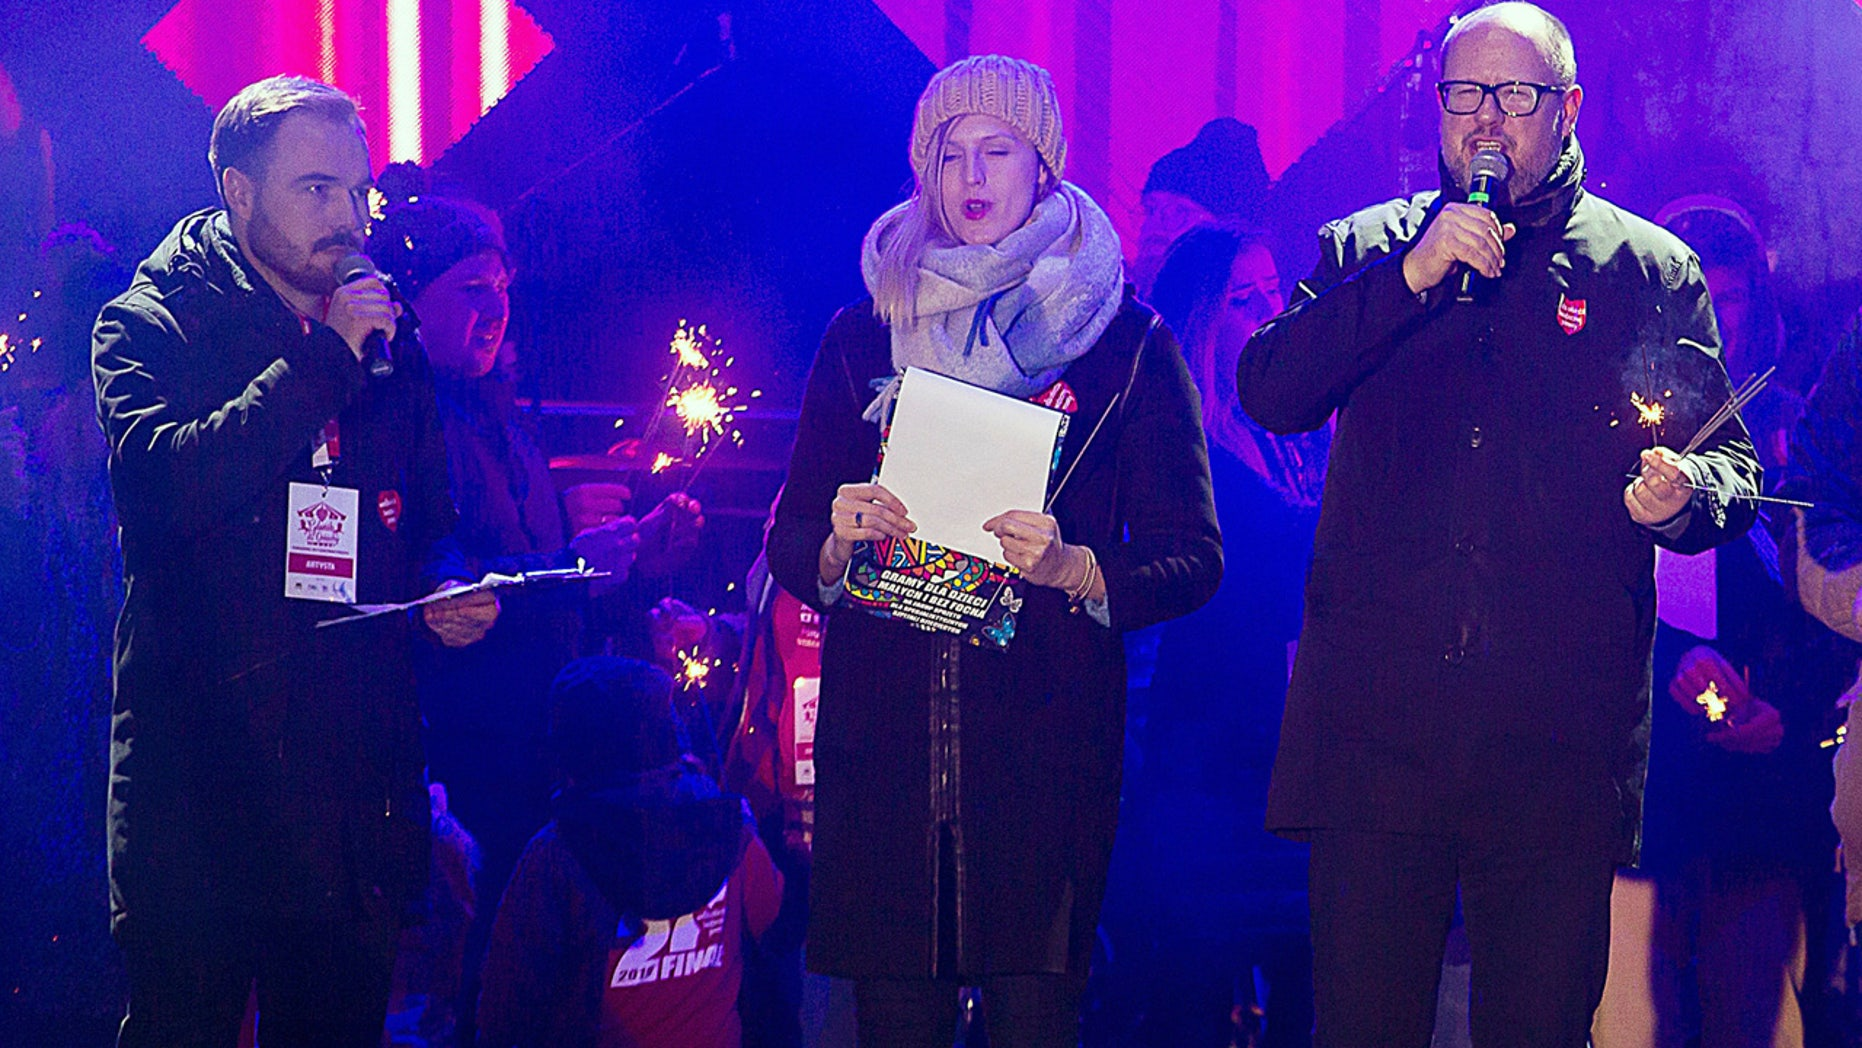 Gdansk Mayor Pawel Adamowicz, far right, speaks to an audience shortly before he was stabbed in Gdansk, Poland, on Sunday, Jan. 13, 2019. Adamowicz was taken to a hospital in very serious condition after the attack and underwent surgery. (AP Photo/Anna Rezulak/KFP) POLAND AUT